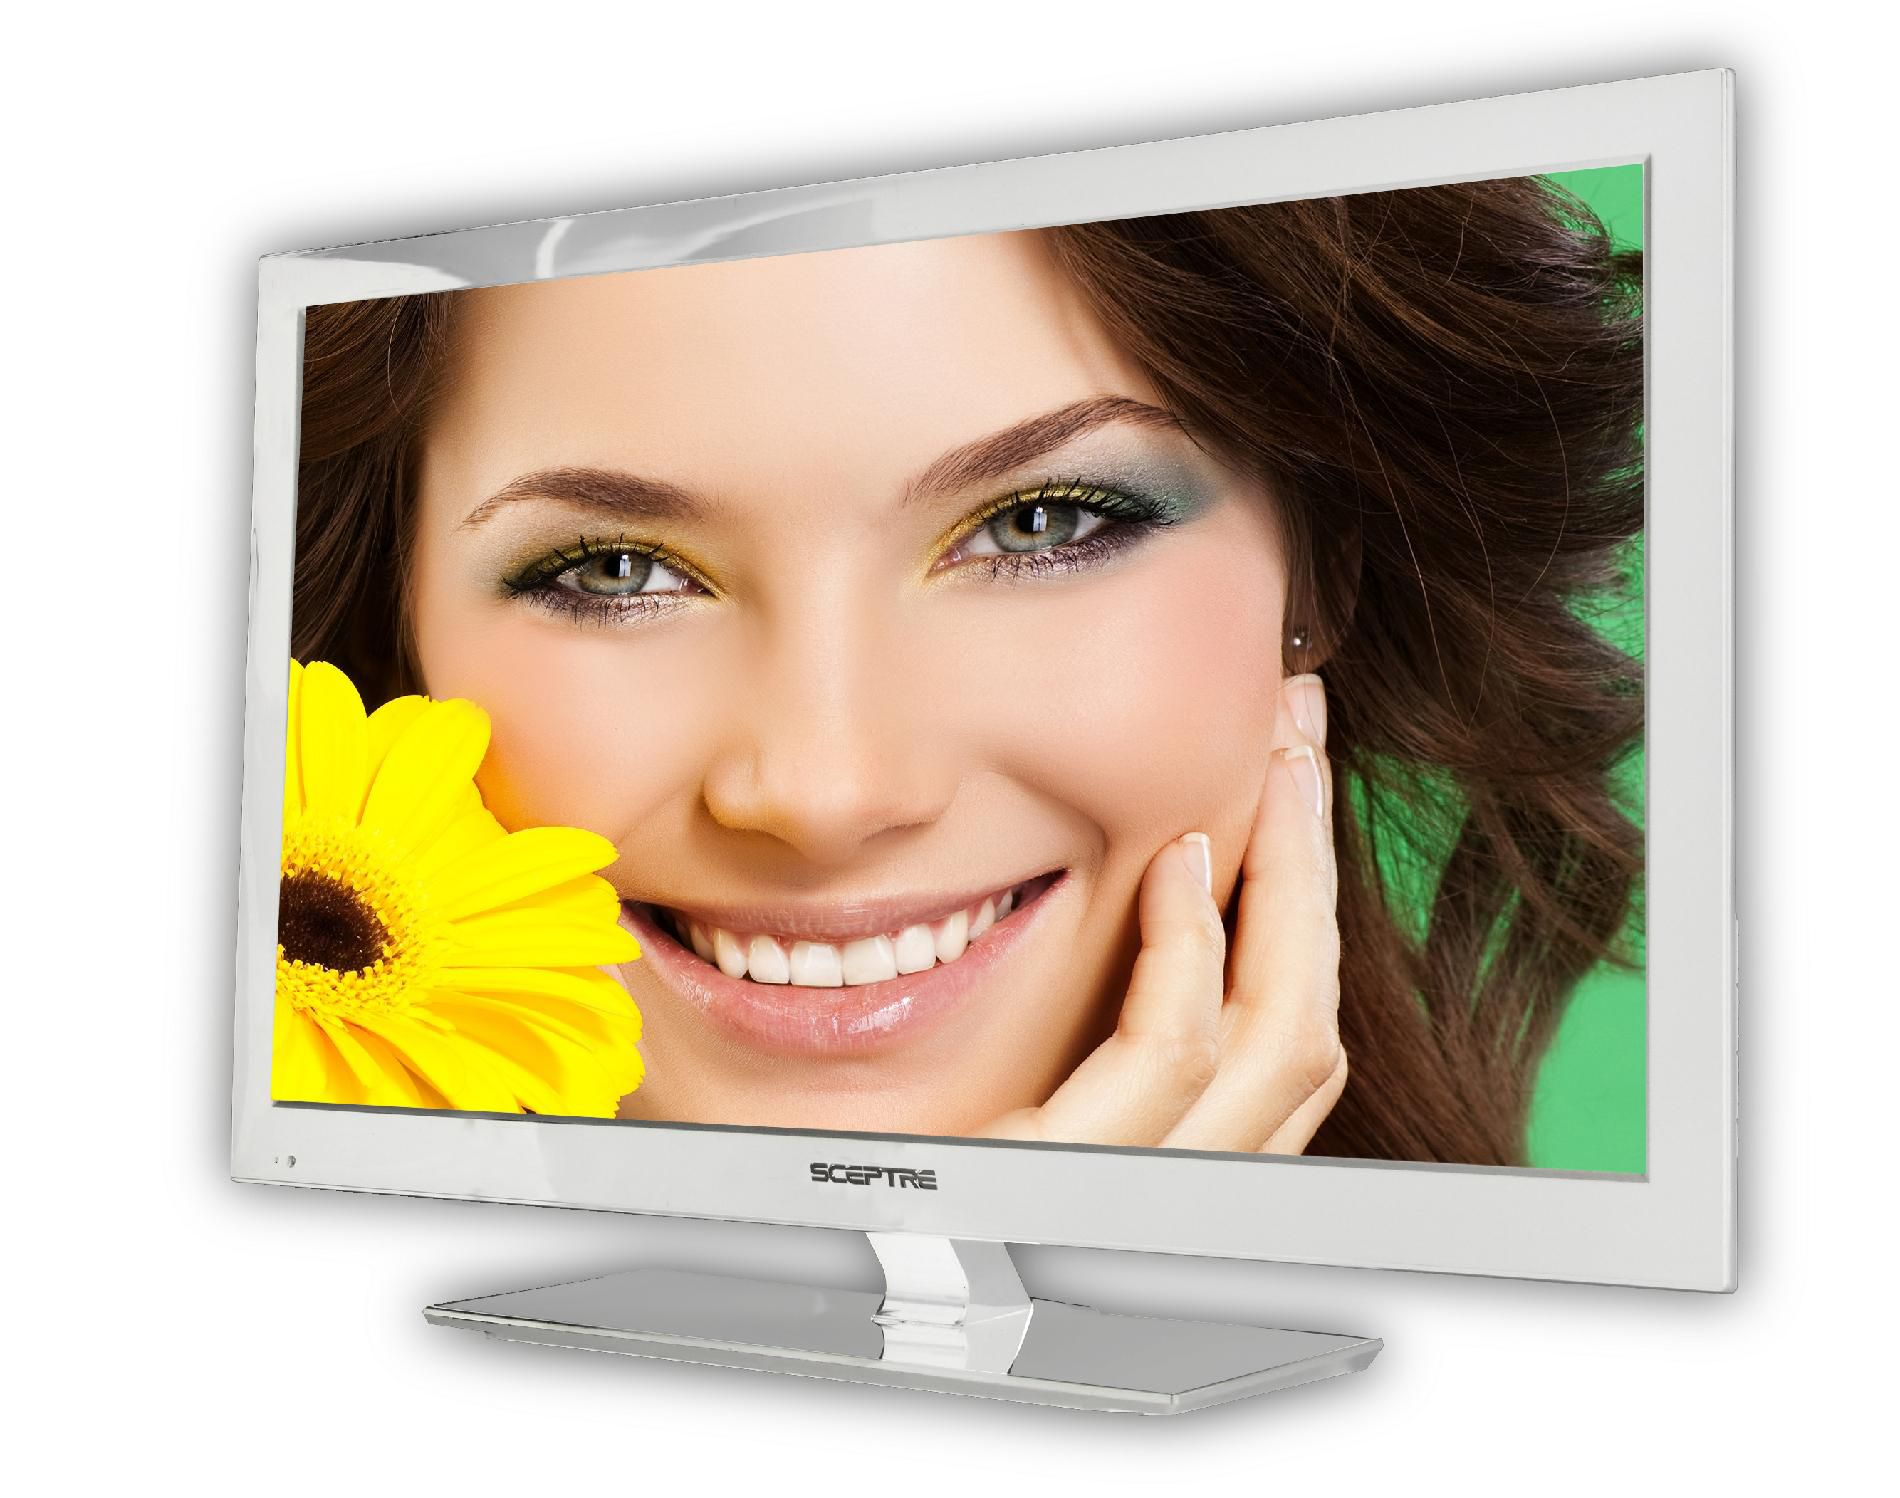 Sceptre E243WV-FHD 23 White 1080P LED HDTV 5ms, 3x HDMI, 1920x1080 Resolution, 250cd/m2 Brightness, USB